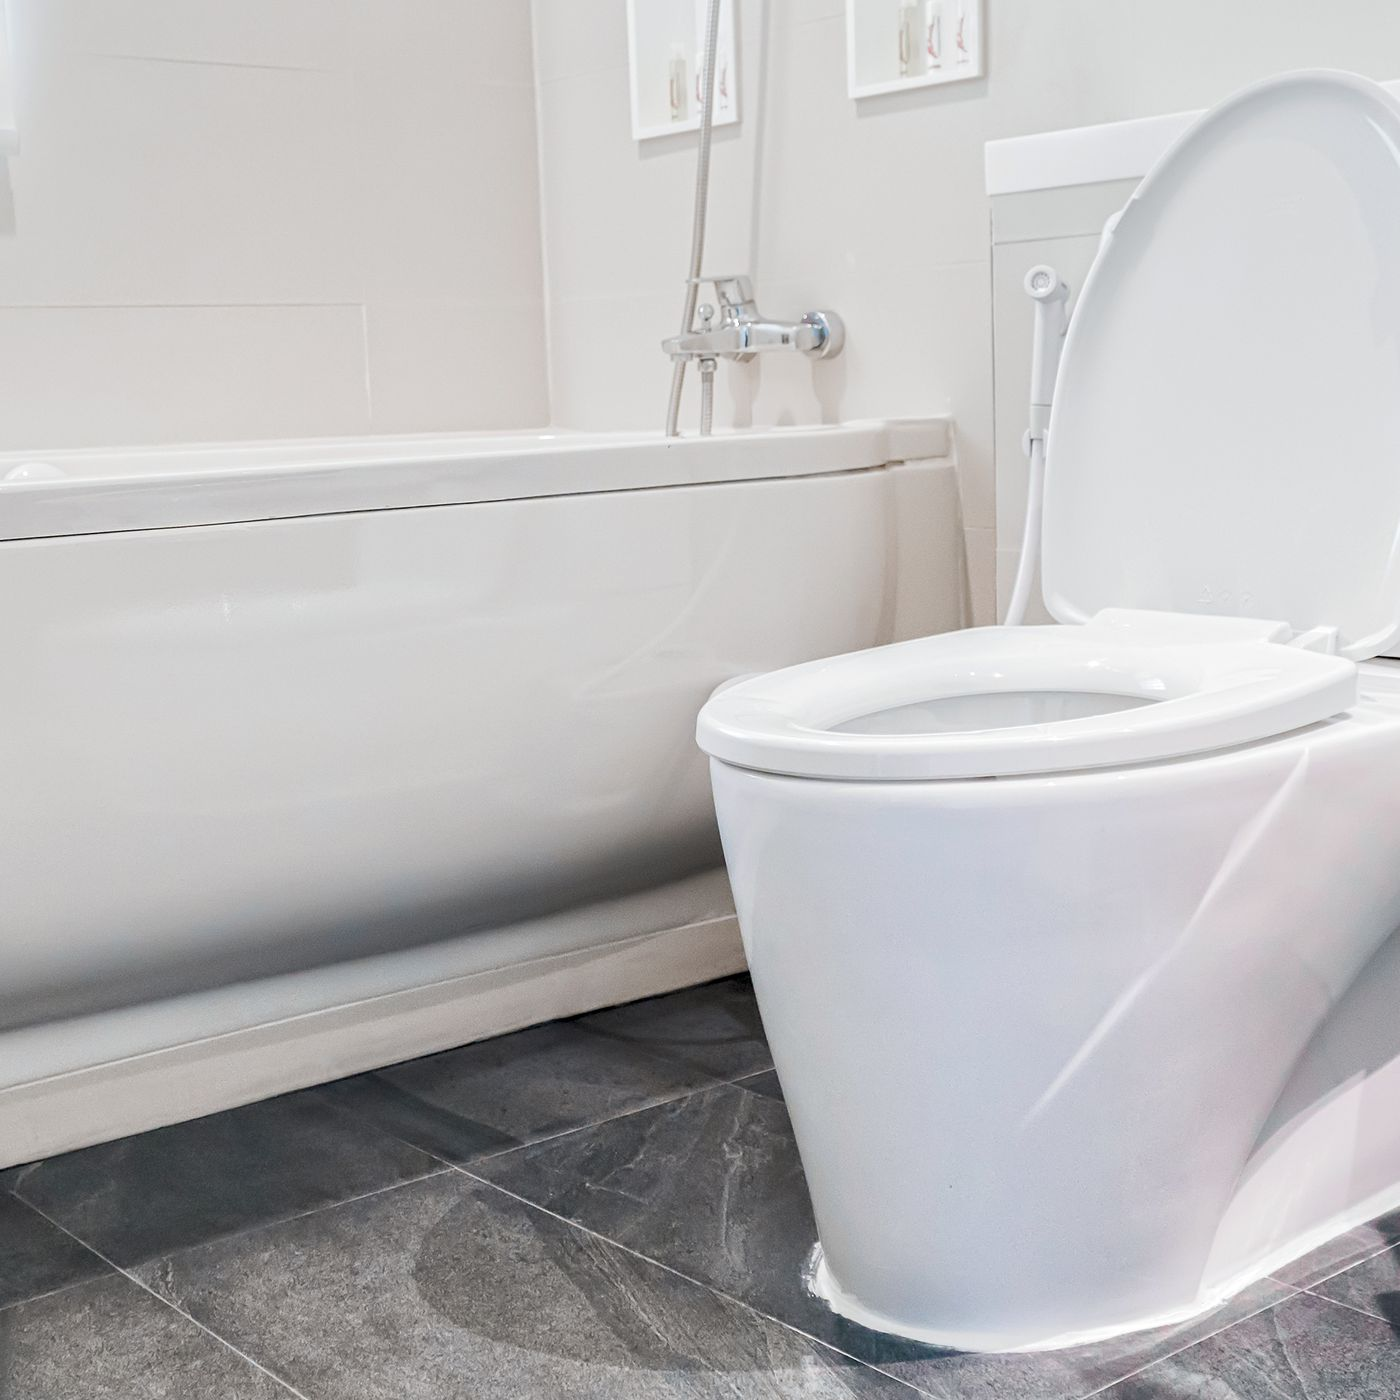 To Unclog A Toilet Without Plunger